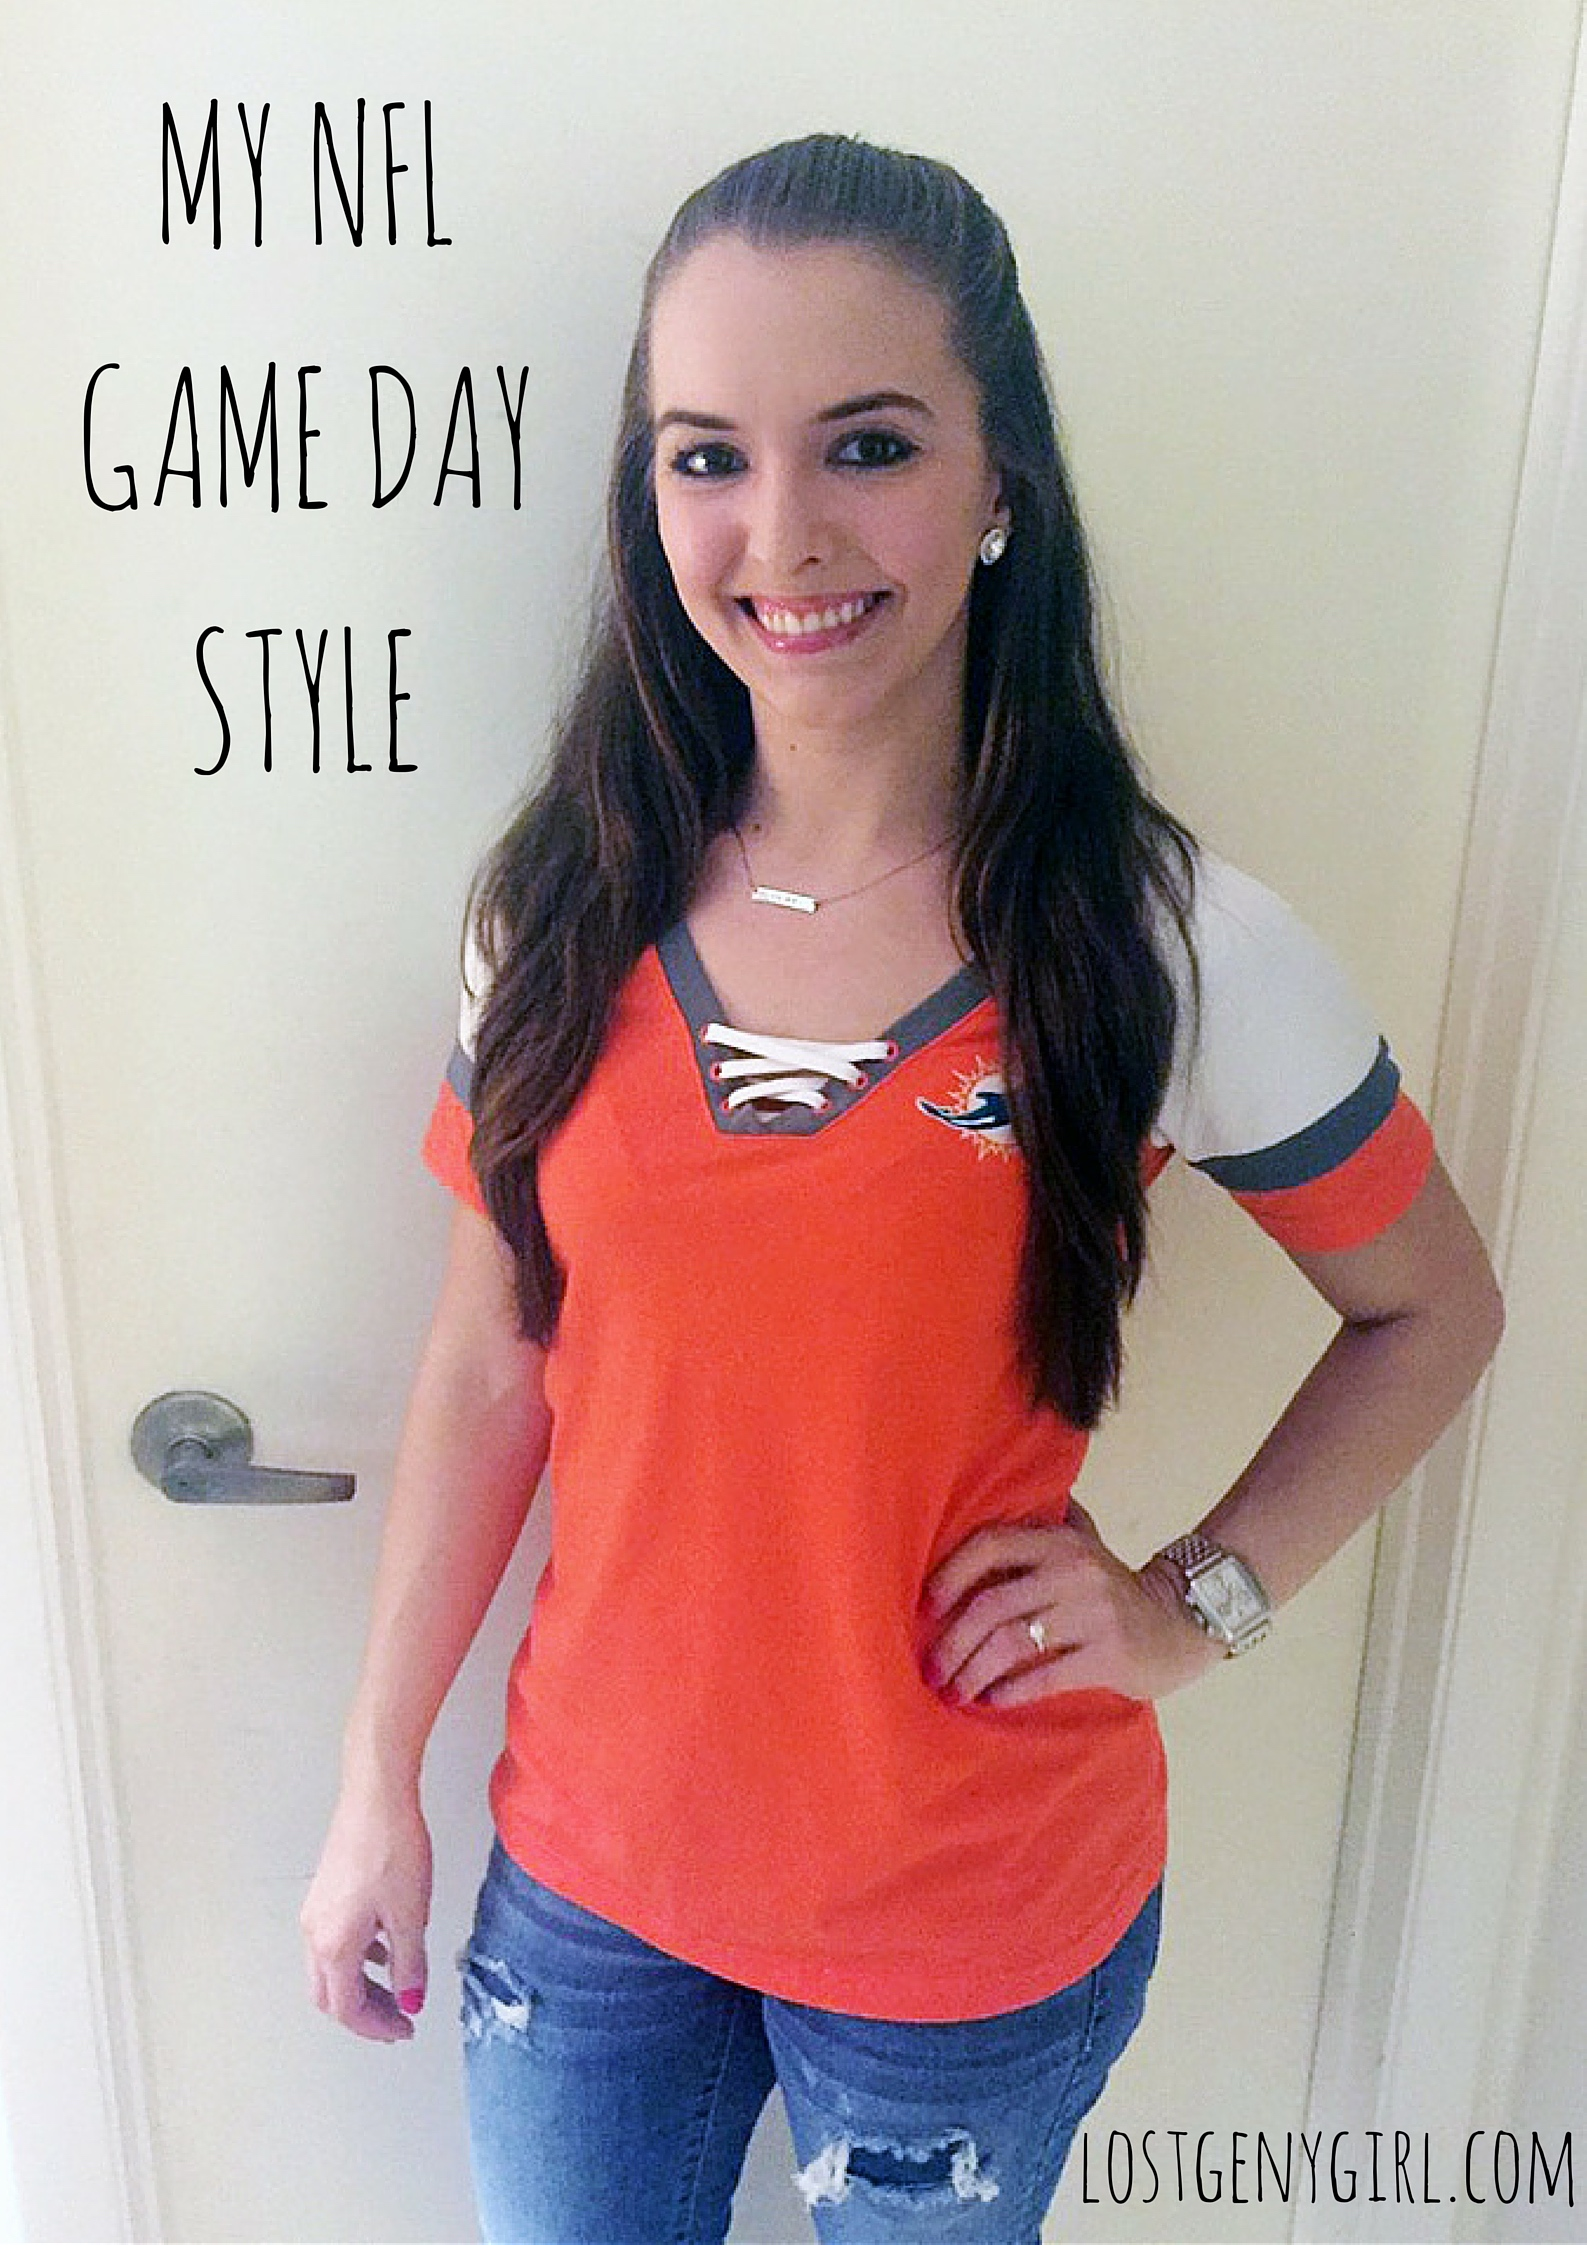 My Nfl Game Day Style